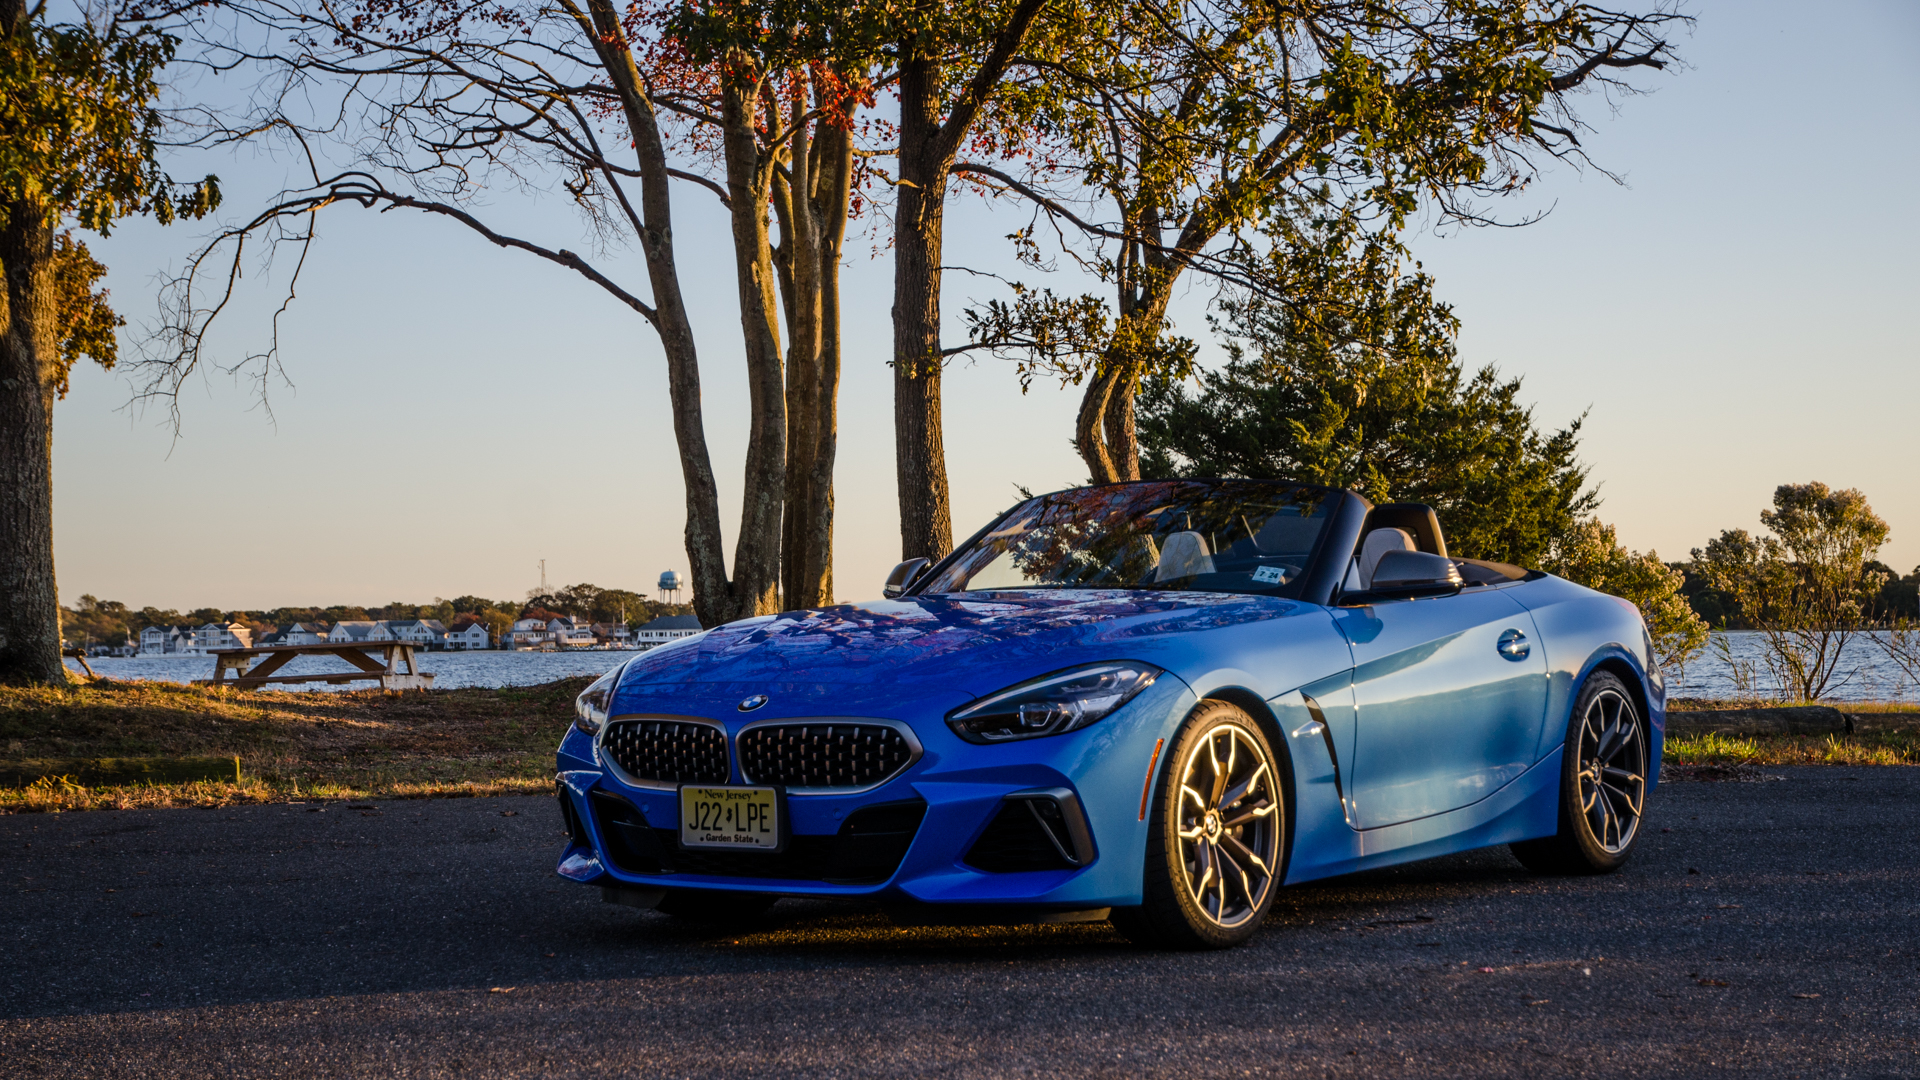 VIDEO REVIEW: BMW Z4 M40i — The Sport BMW Roadster is Back!